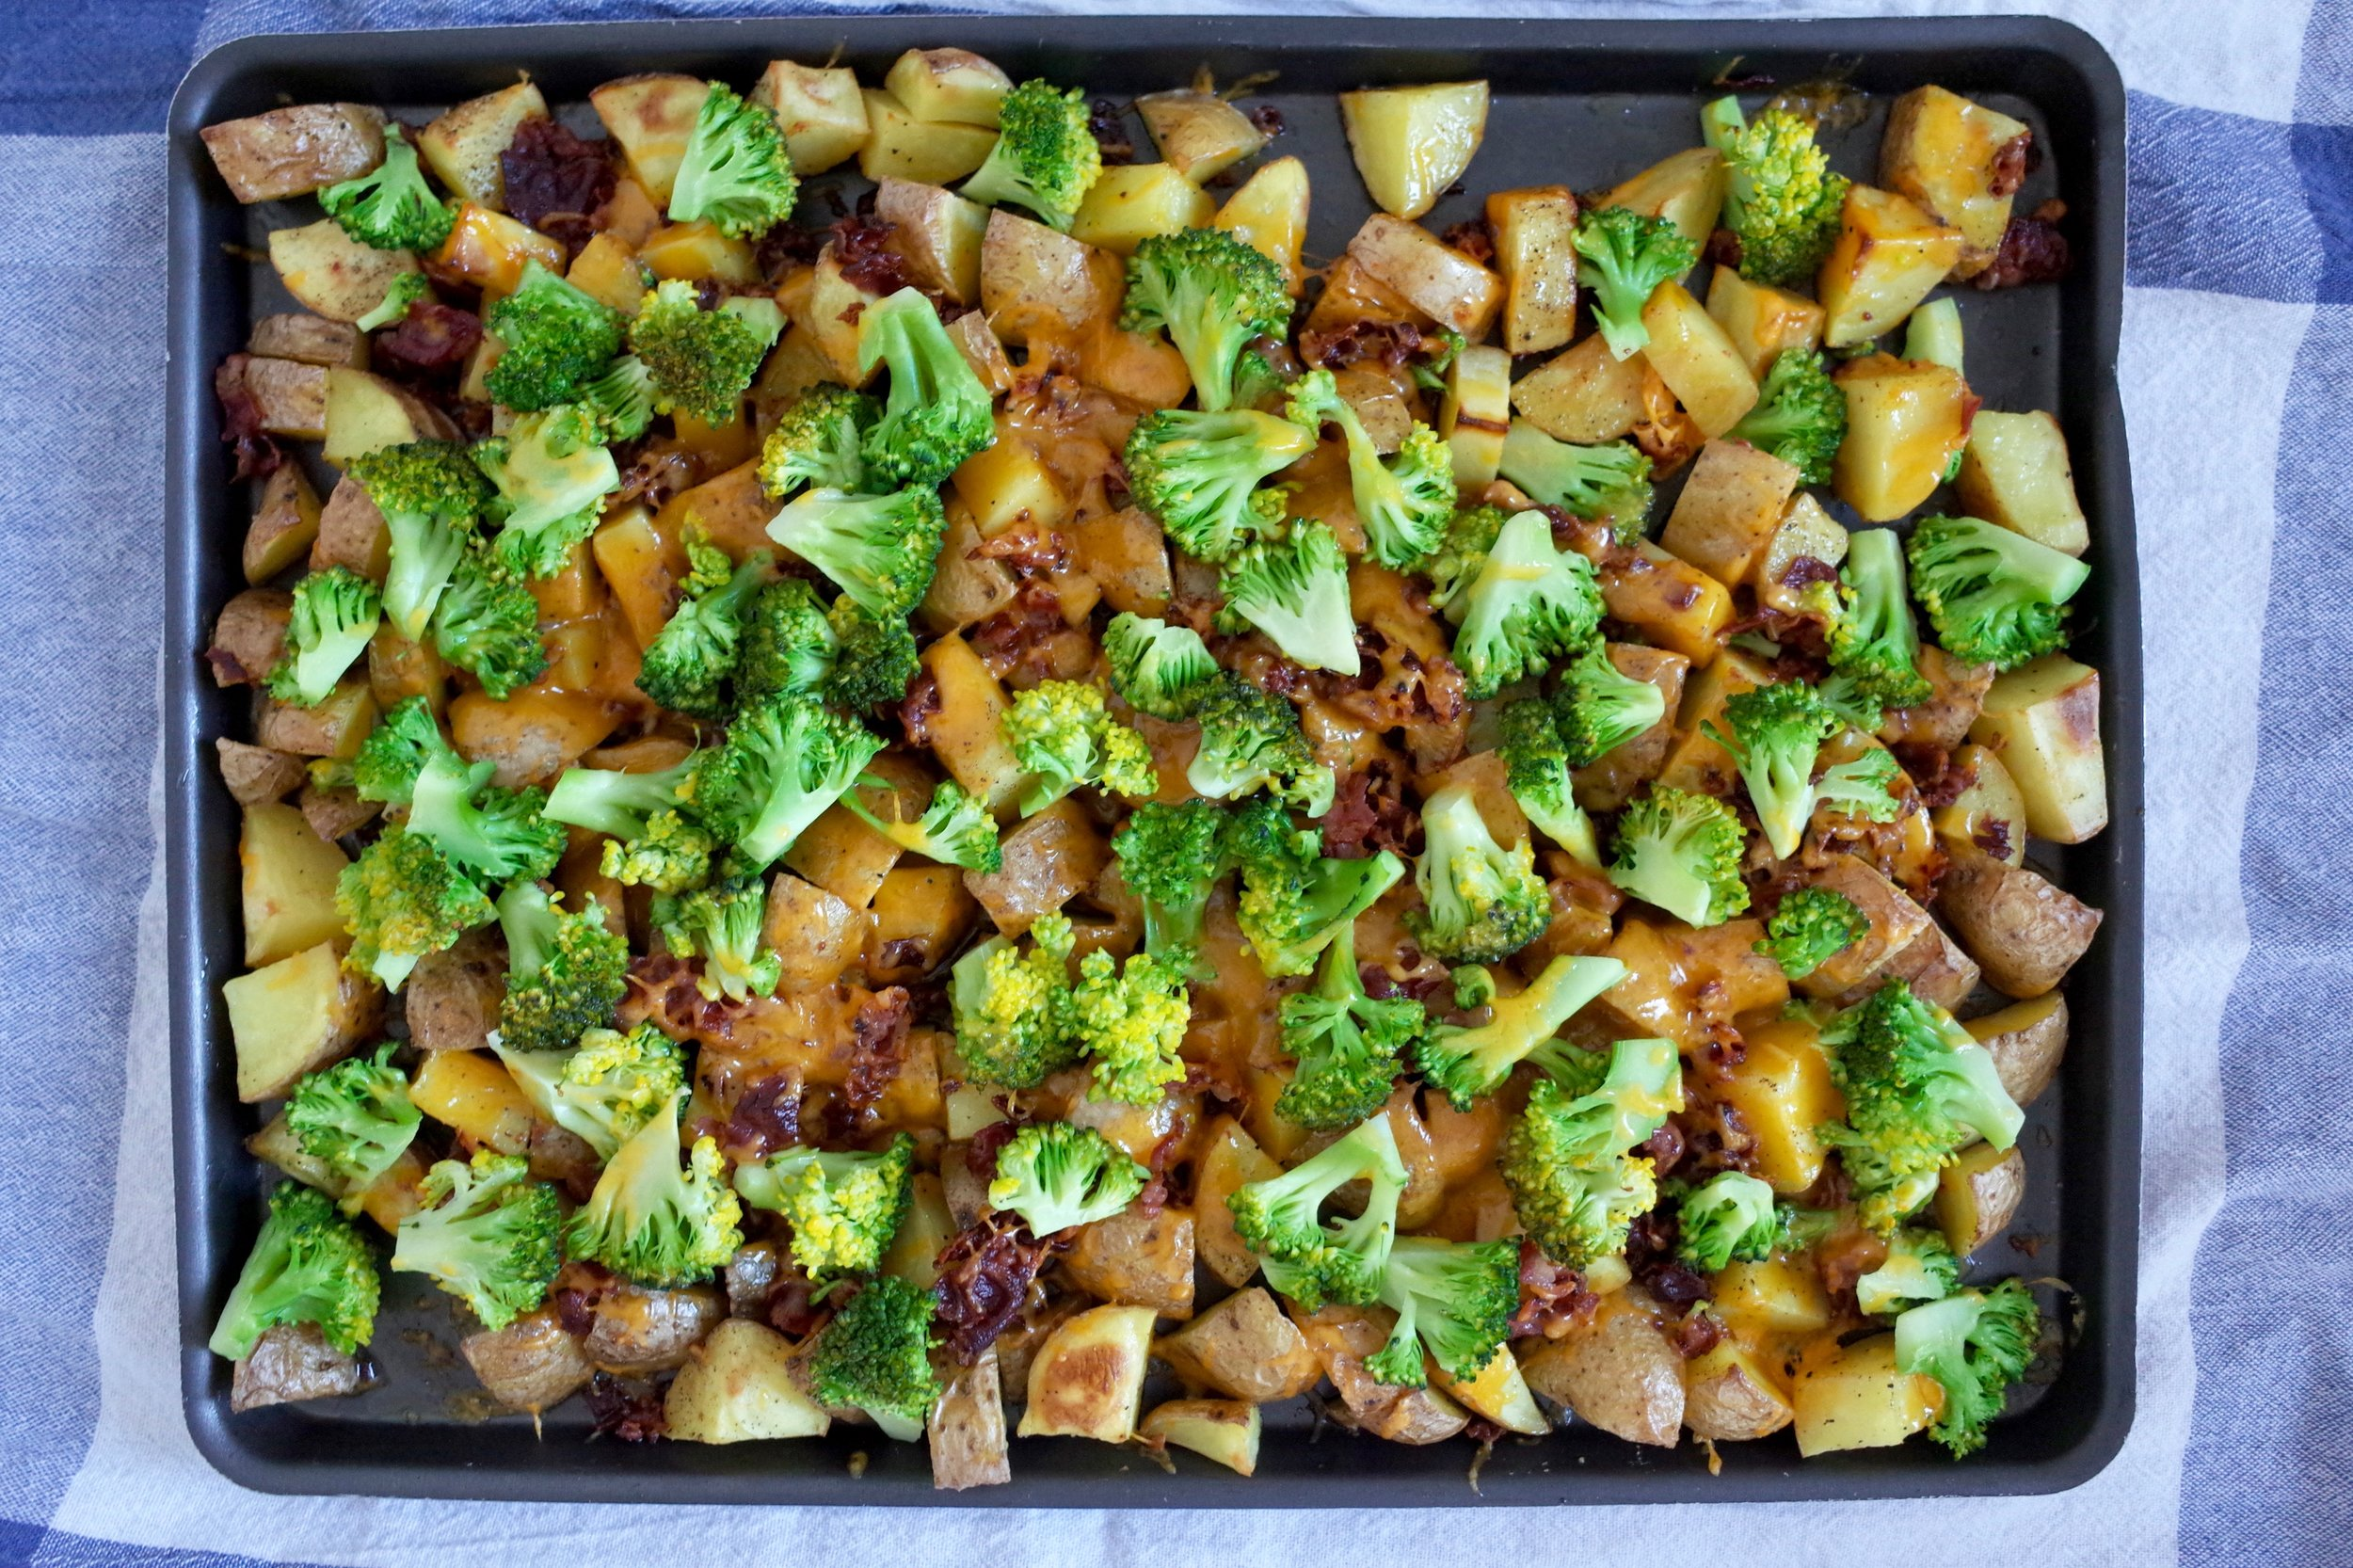 LOADED SHEET PAN POTATOES | via Frame of Reference